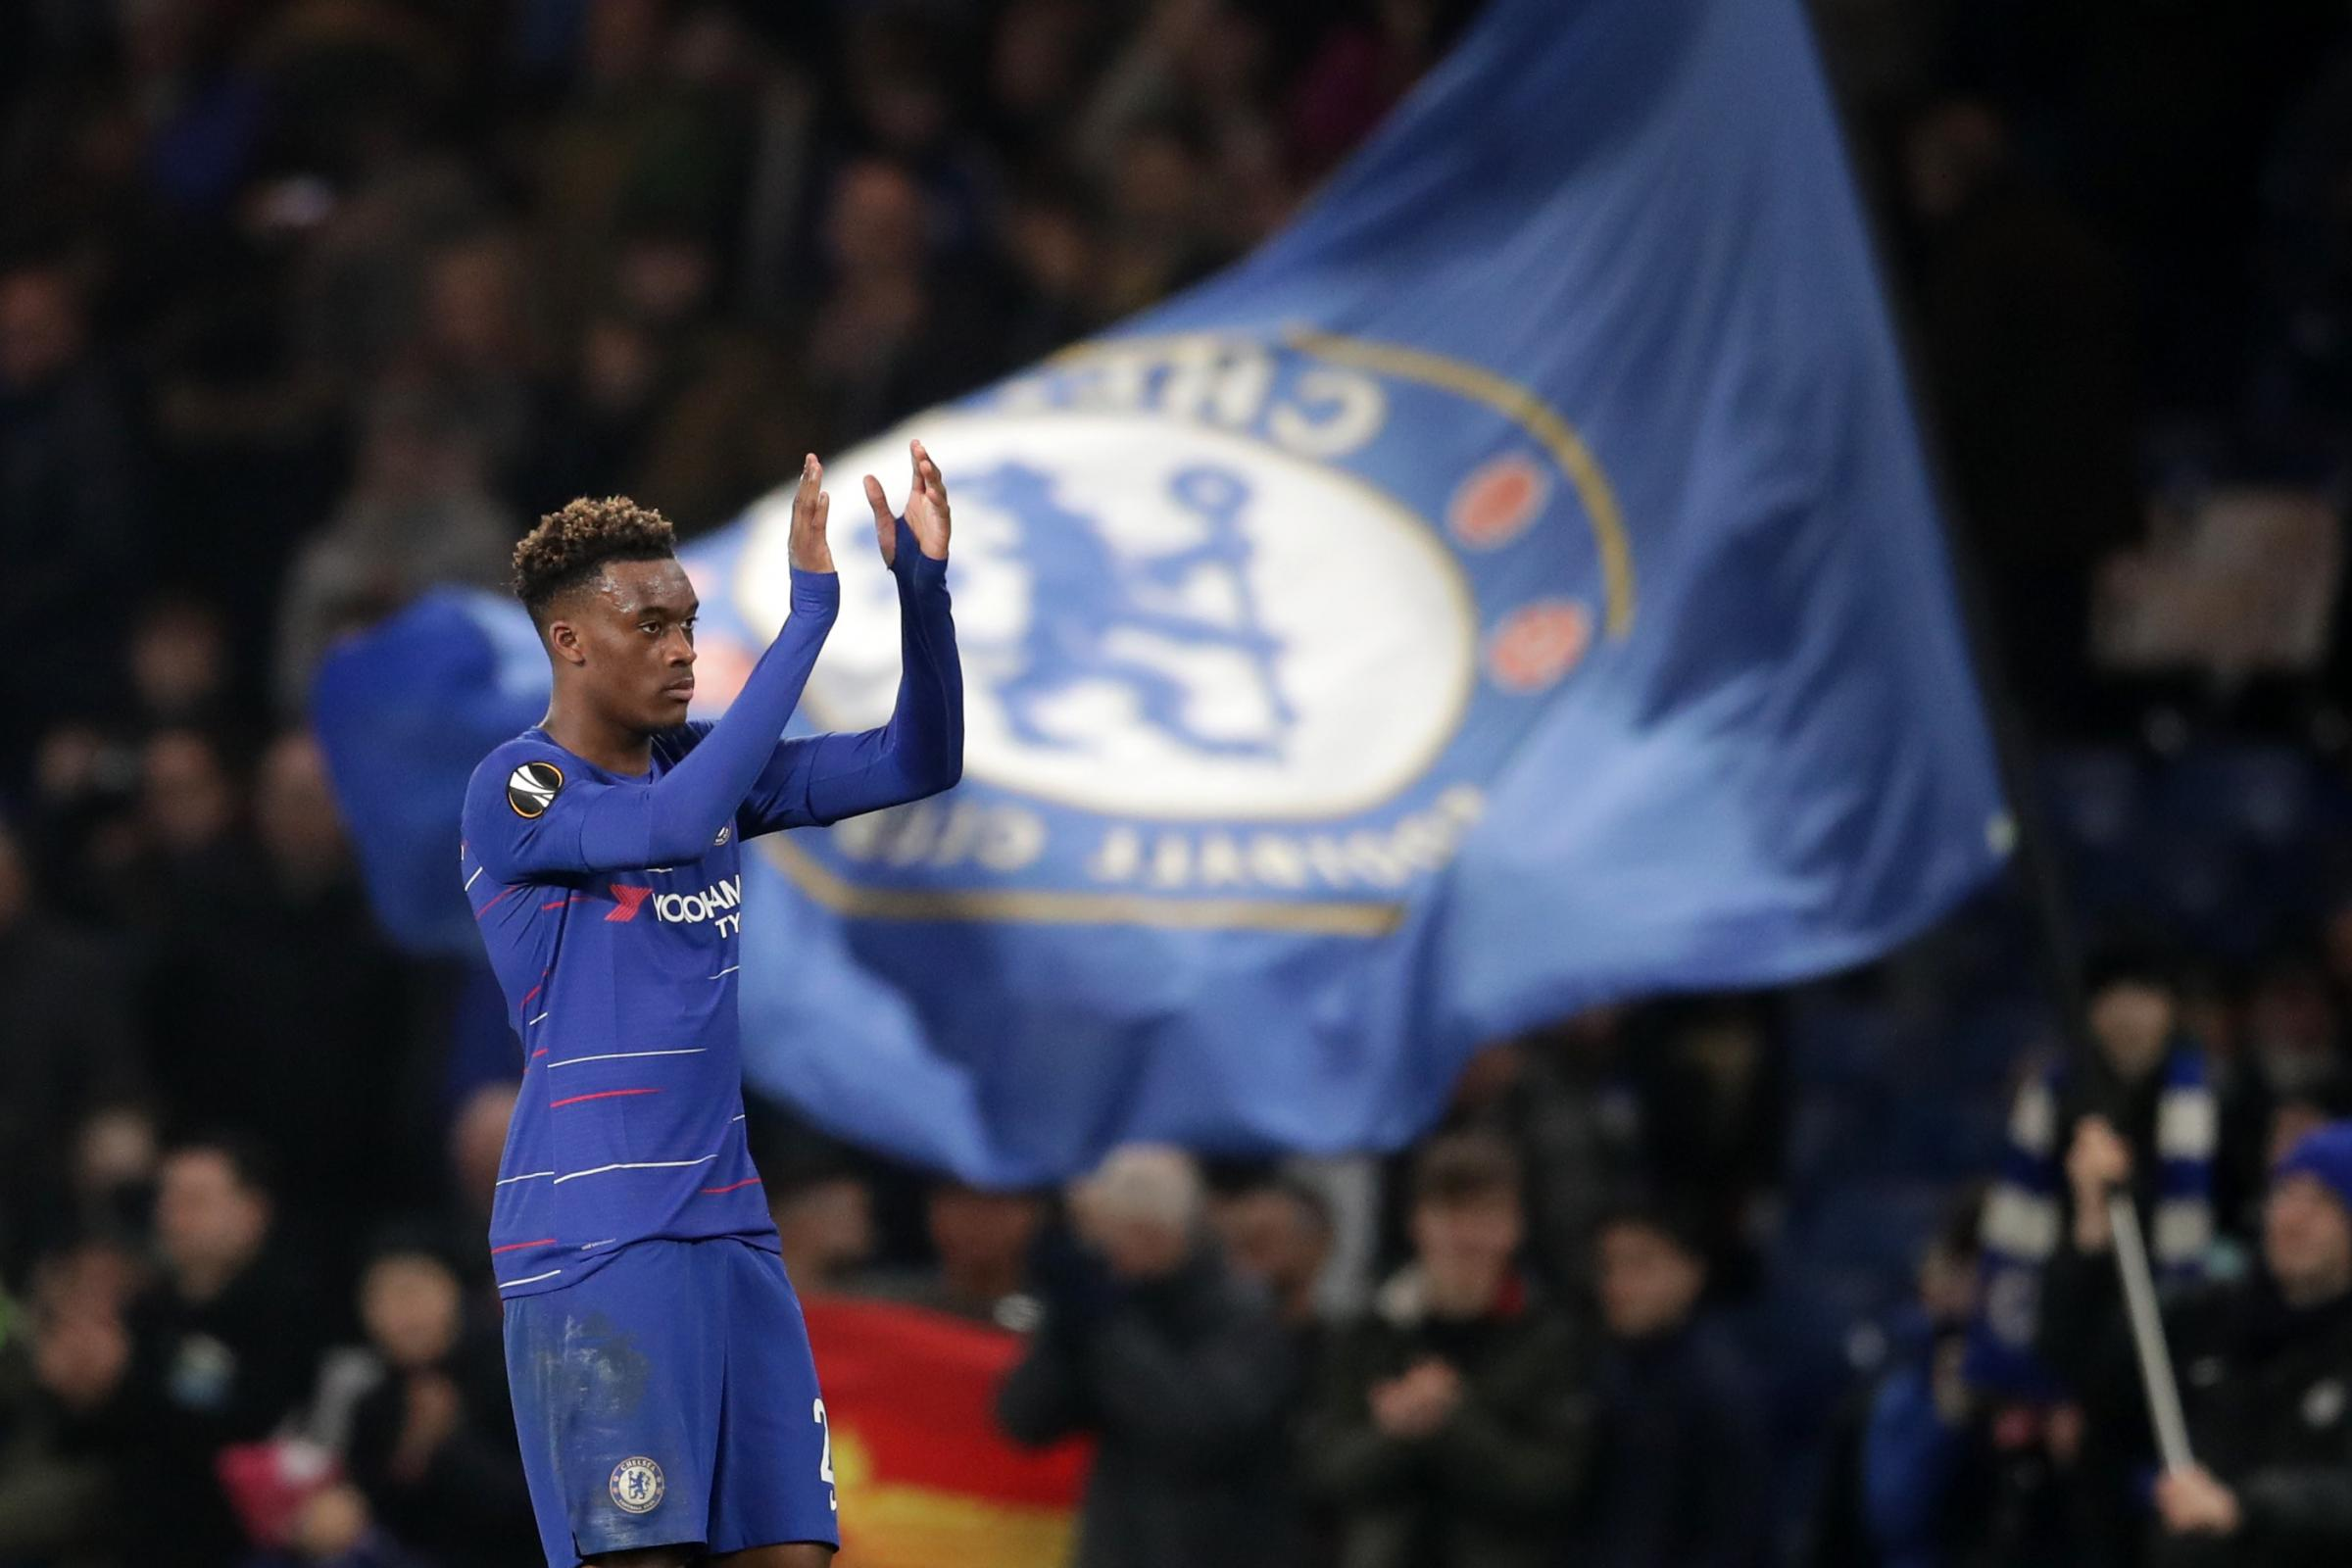 Callum Hudson-Odoi helped the Blues progress to the last 16 of the Europa League